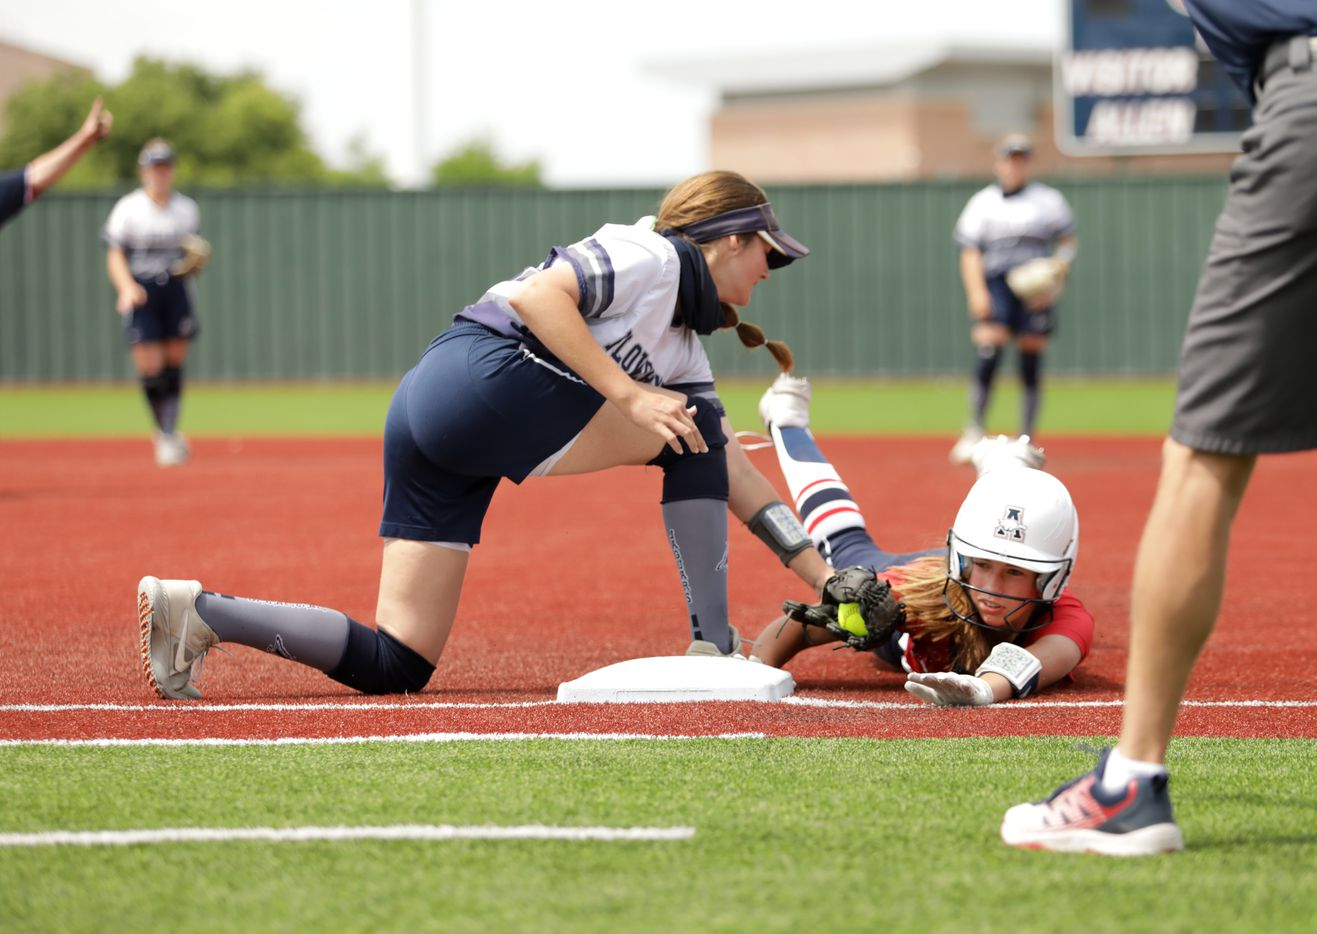 Flower Mound High School player #23, Courtney Cogbill, attempts to tag out Allen High School player #1, Brooke Hull, as she slides back to first base during a softball game at Allen High School in Allen, TX, on May 15, 2021. (Jason Janik/Special Contributor)